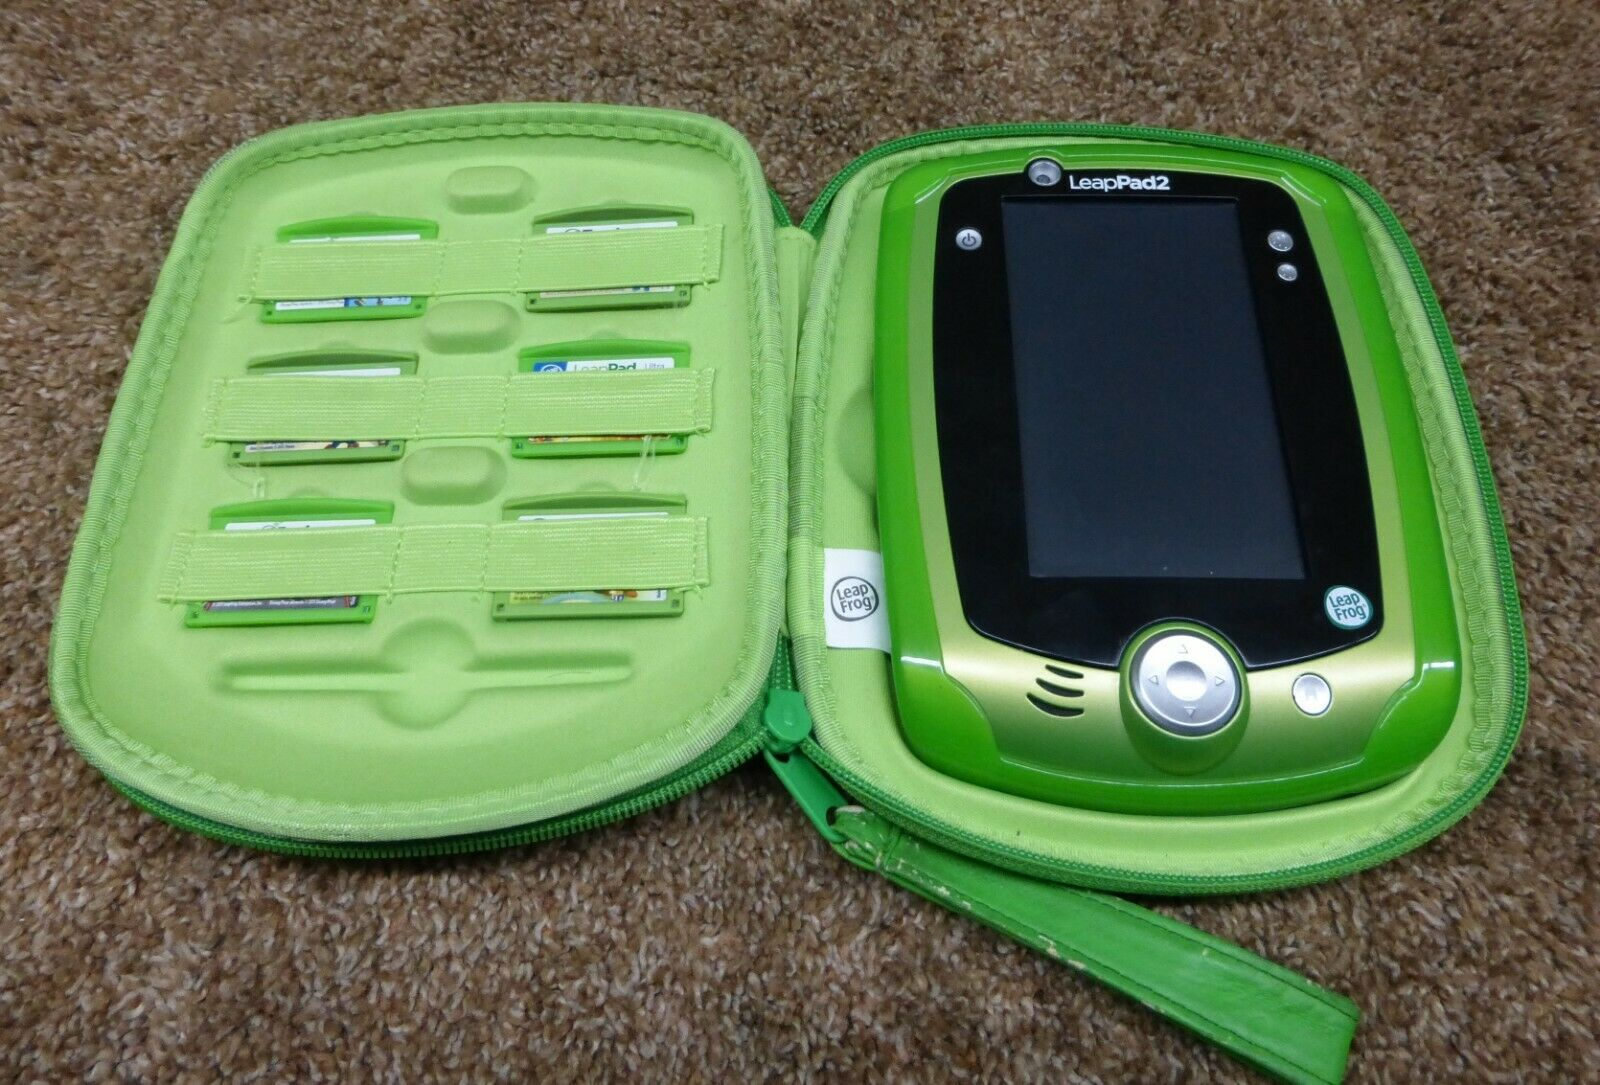 Leapfrog LeapPad Green  Kids Learning Electronic Tablet Case 7 Games FREE GIFT